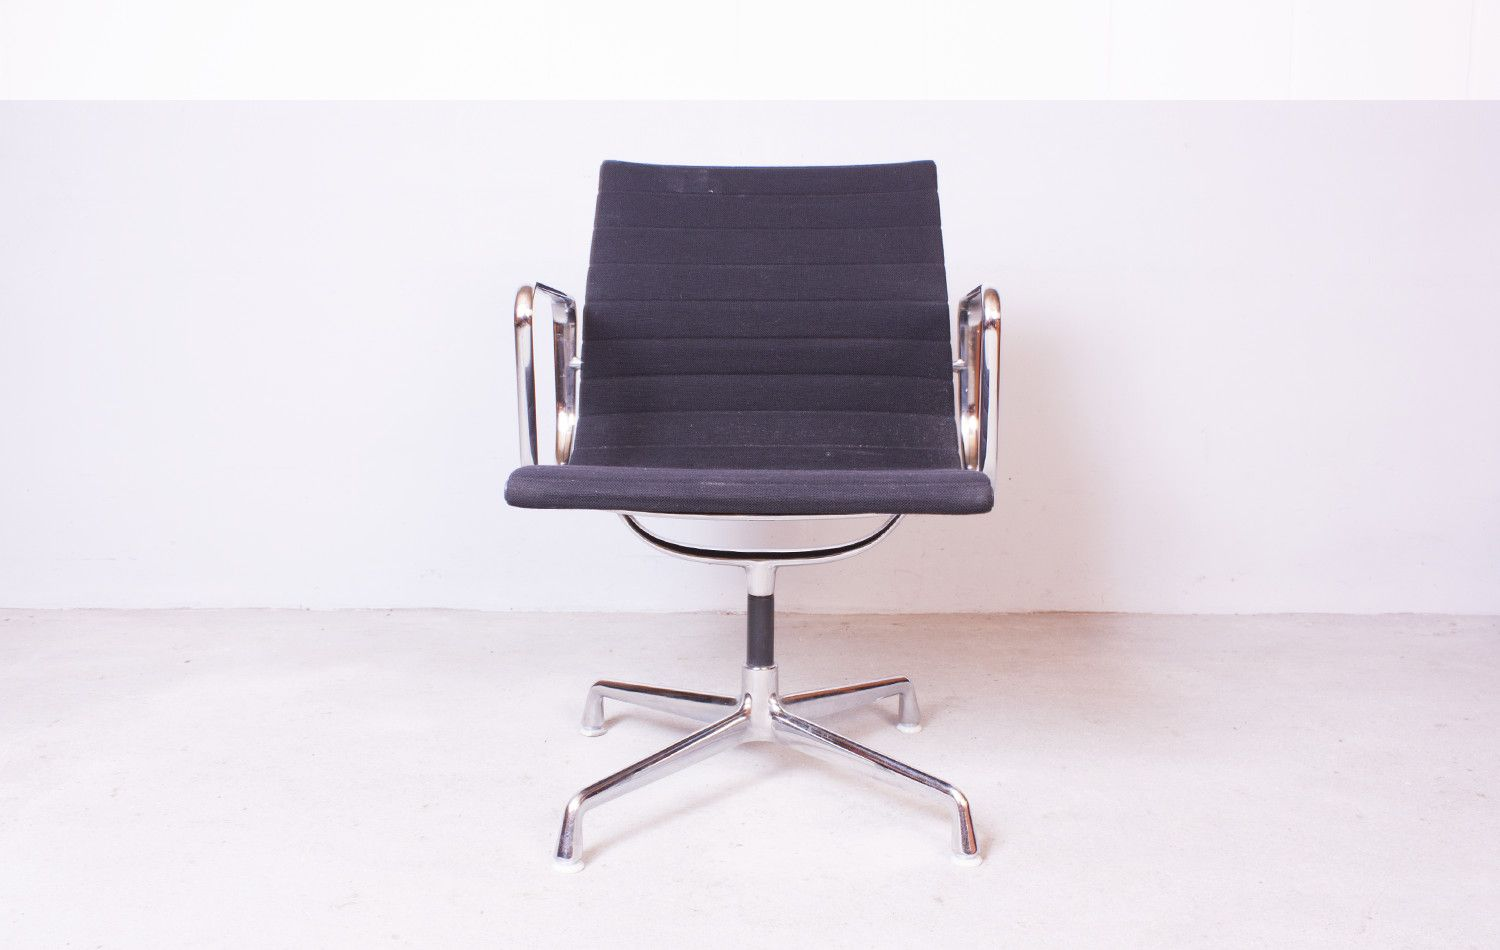 Ea 108 chair by charles ray eames for vitra for sale at for Vitra ea 108 replica